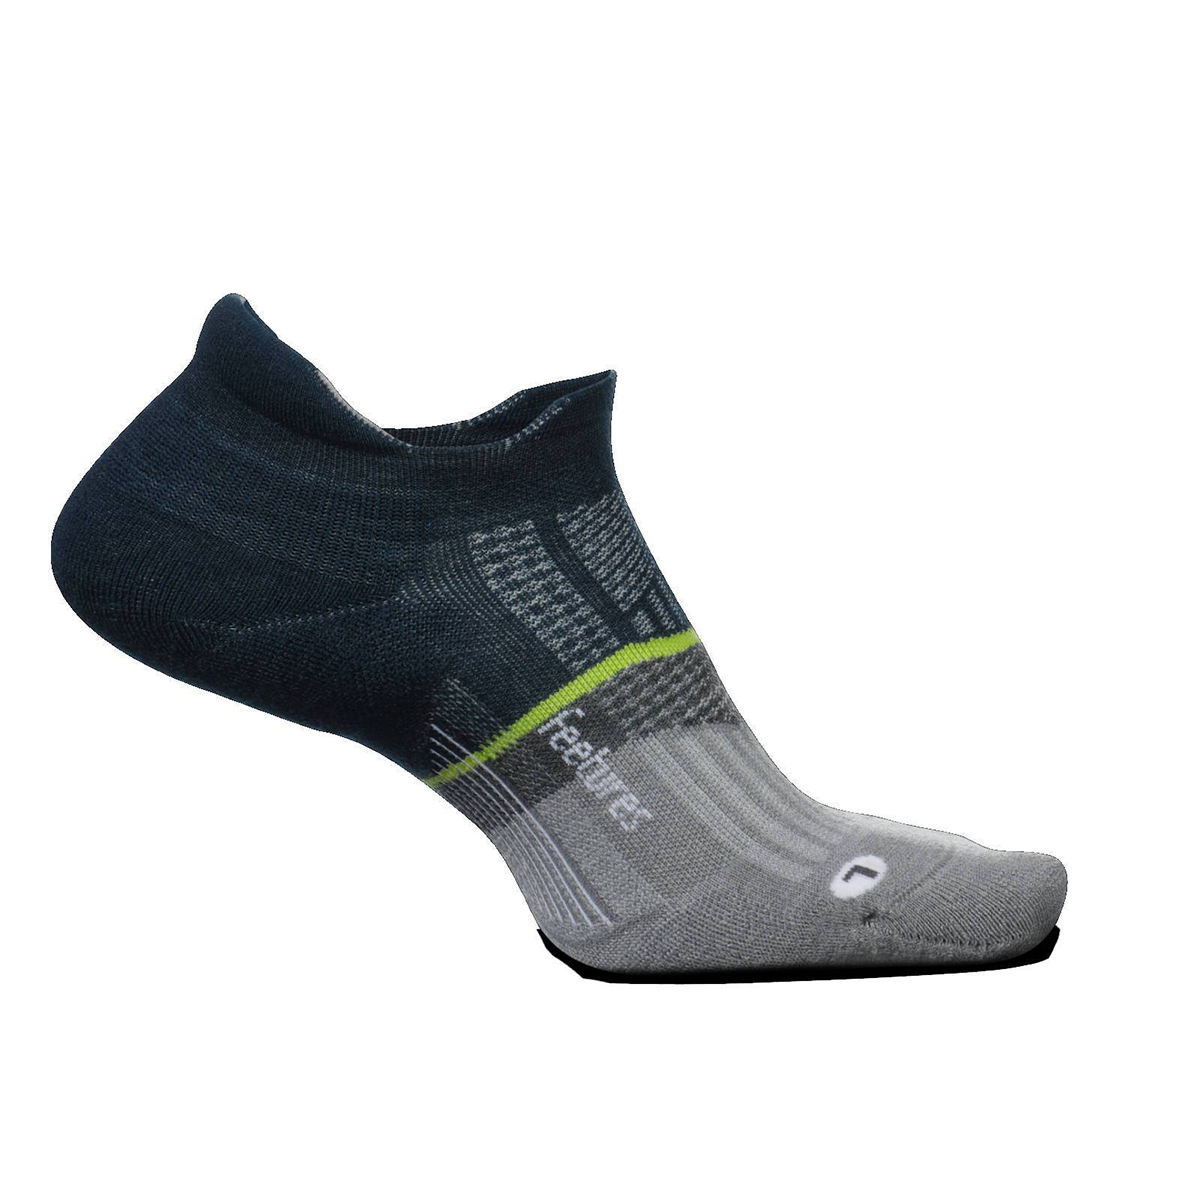 Feetures Merino 10 Ultra Light No Show Tab Socks - Color: French Navy - Size: S, French Navy, large, image 1